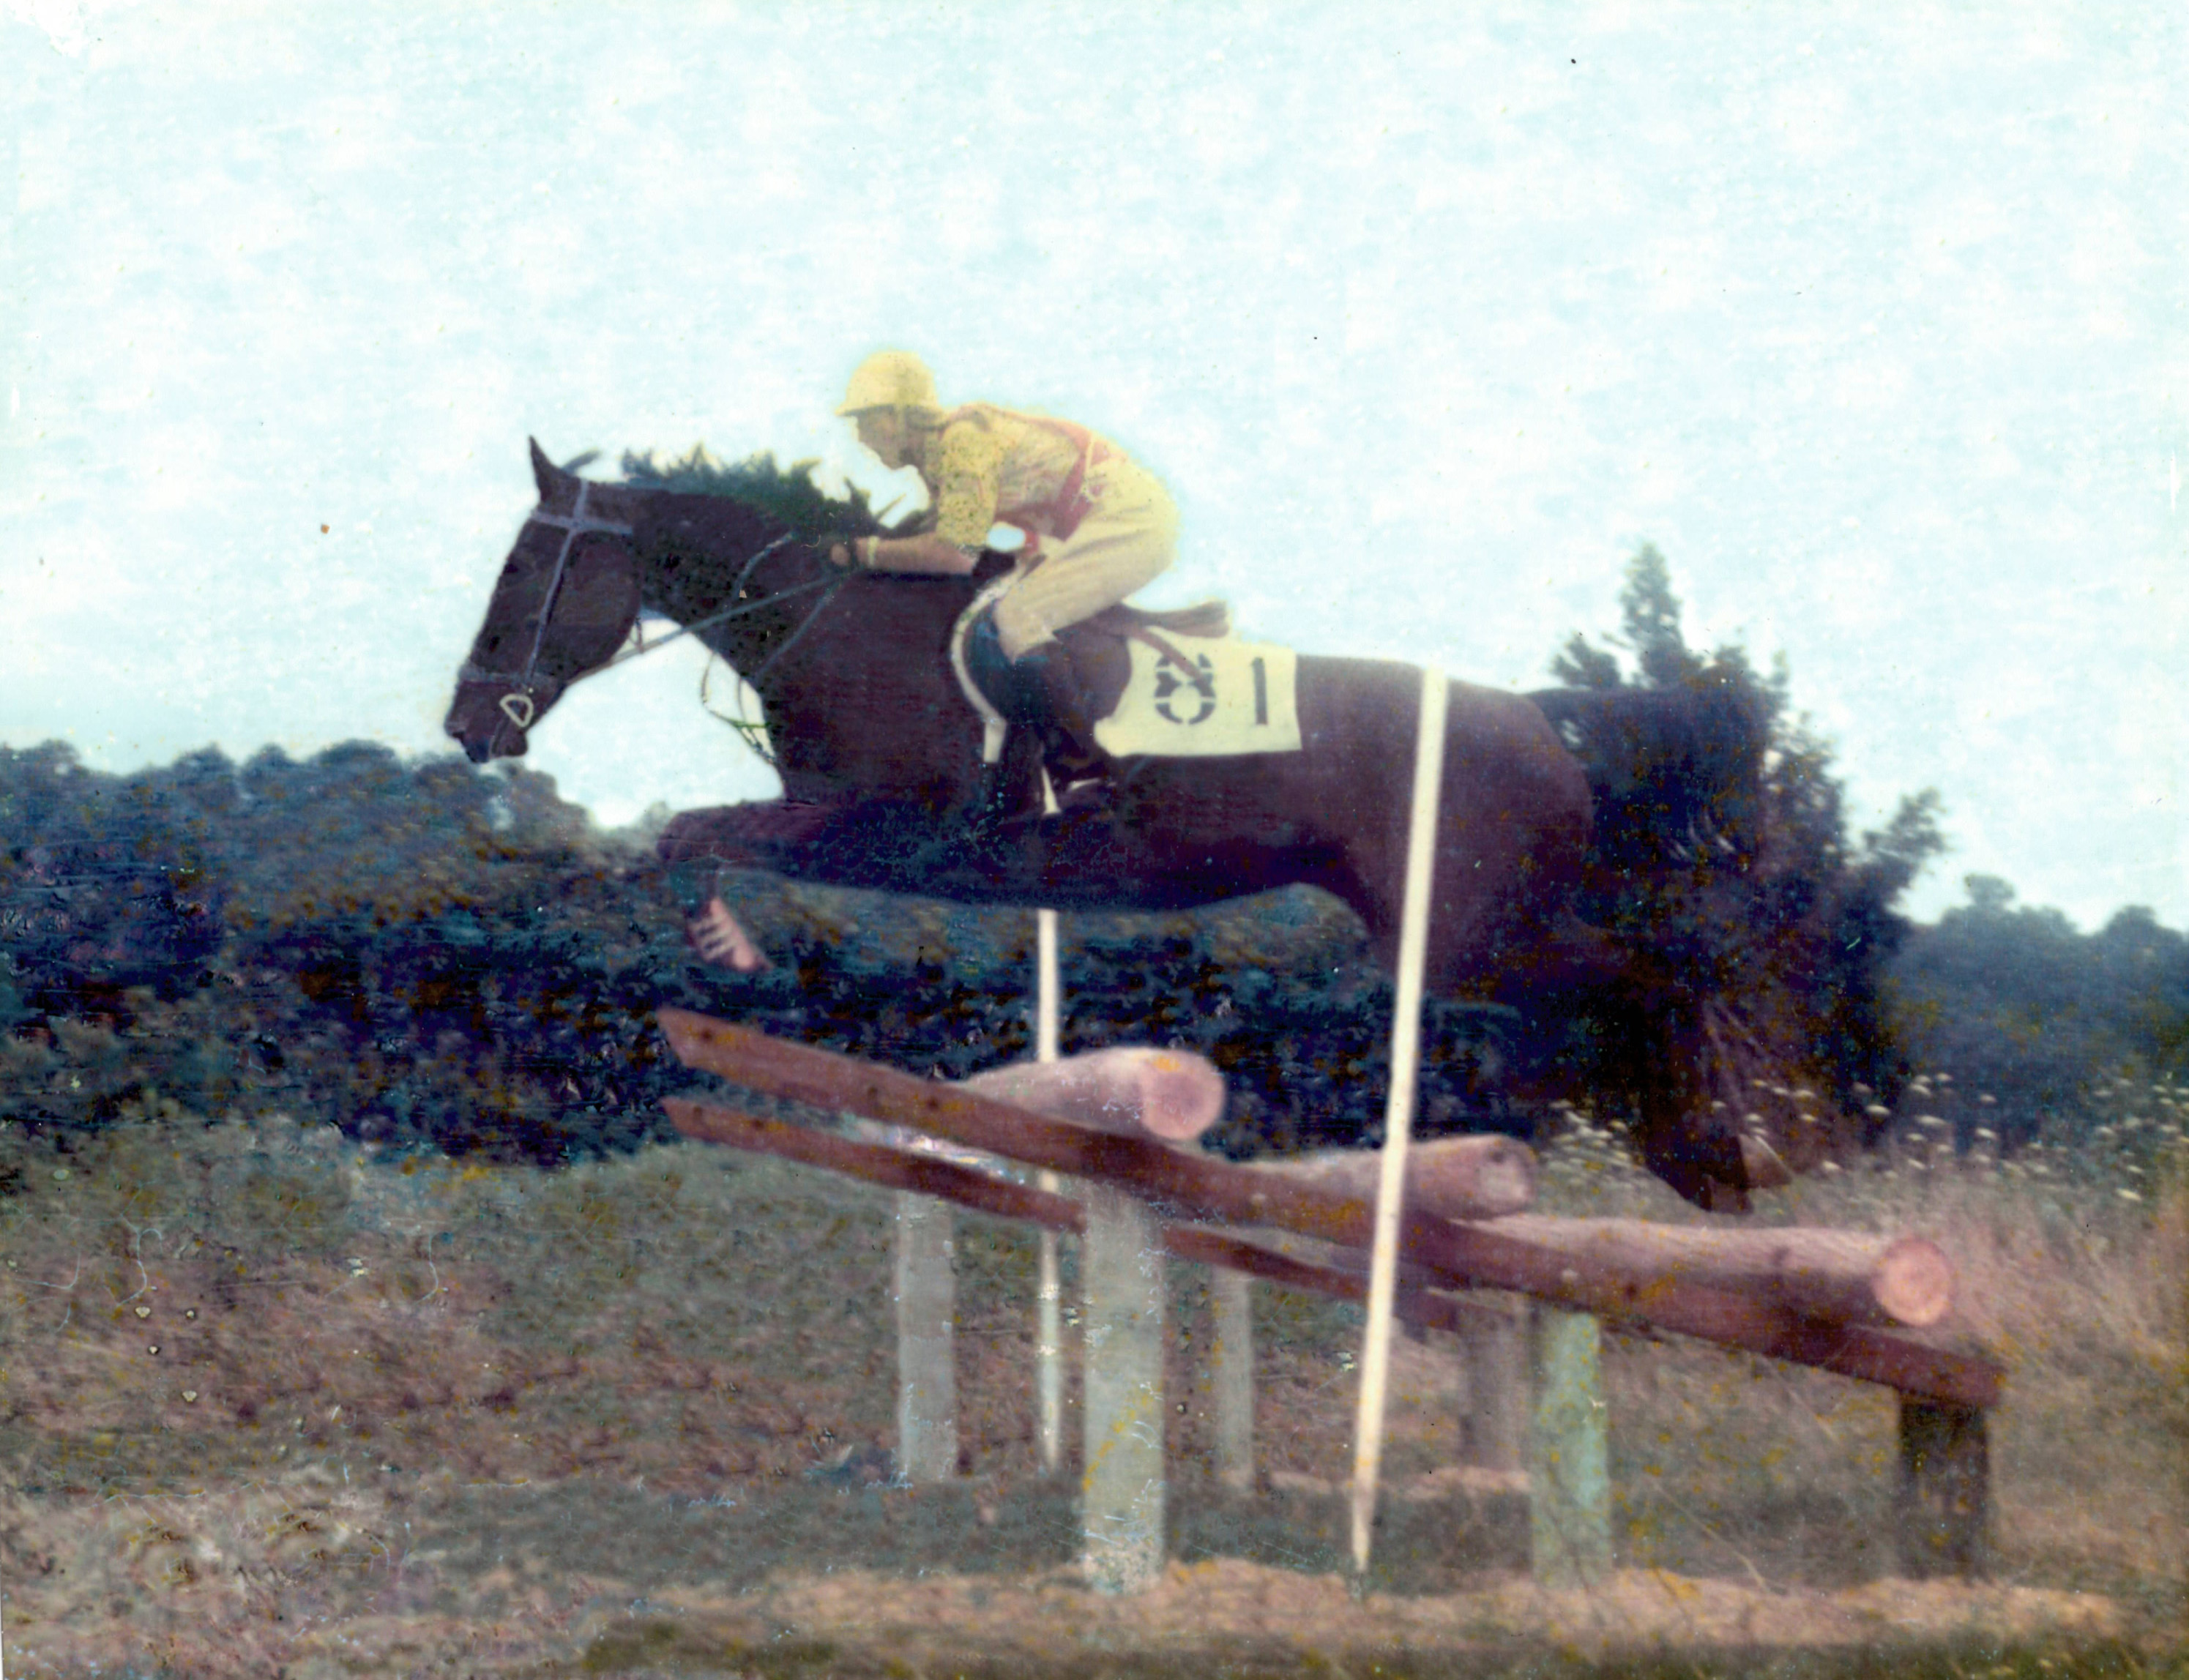 Jean Kiefer-Wood at a Pony Club rally at Foxcroft School (Va.) in 1972 aboard her Appaloosa/Thoroughbred Asterix. Photo courtesy of Jean Kiefer-Wood.